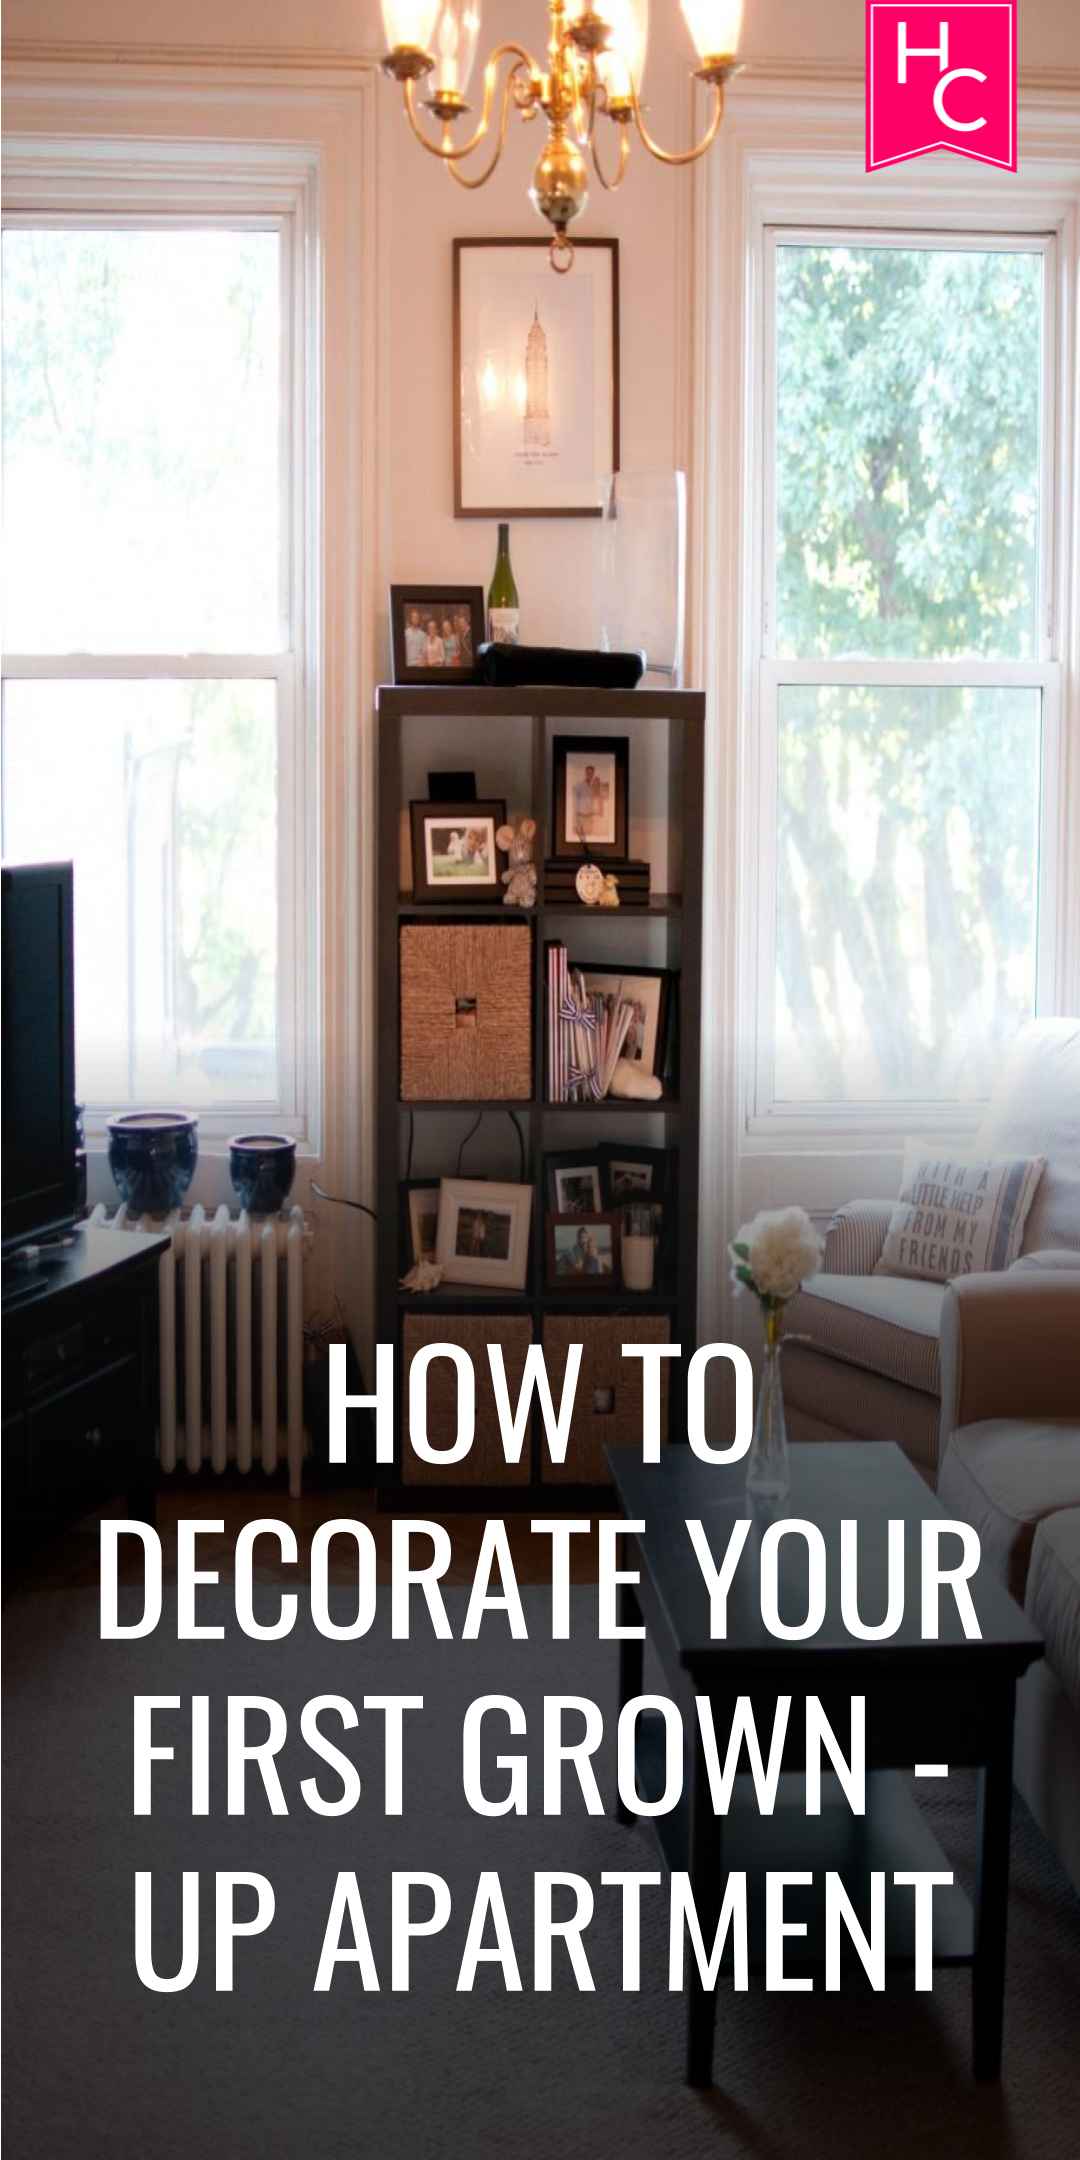 How To Decorate Your First Grown Up Apartment Decorating My First Apartment Decorate First Home Decorating A New Home